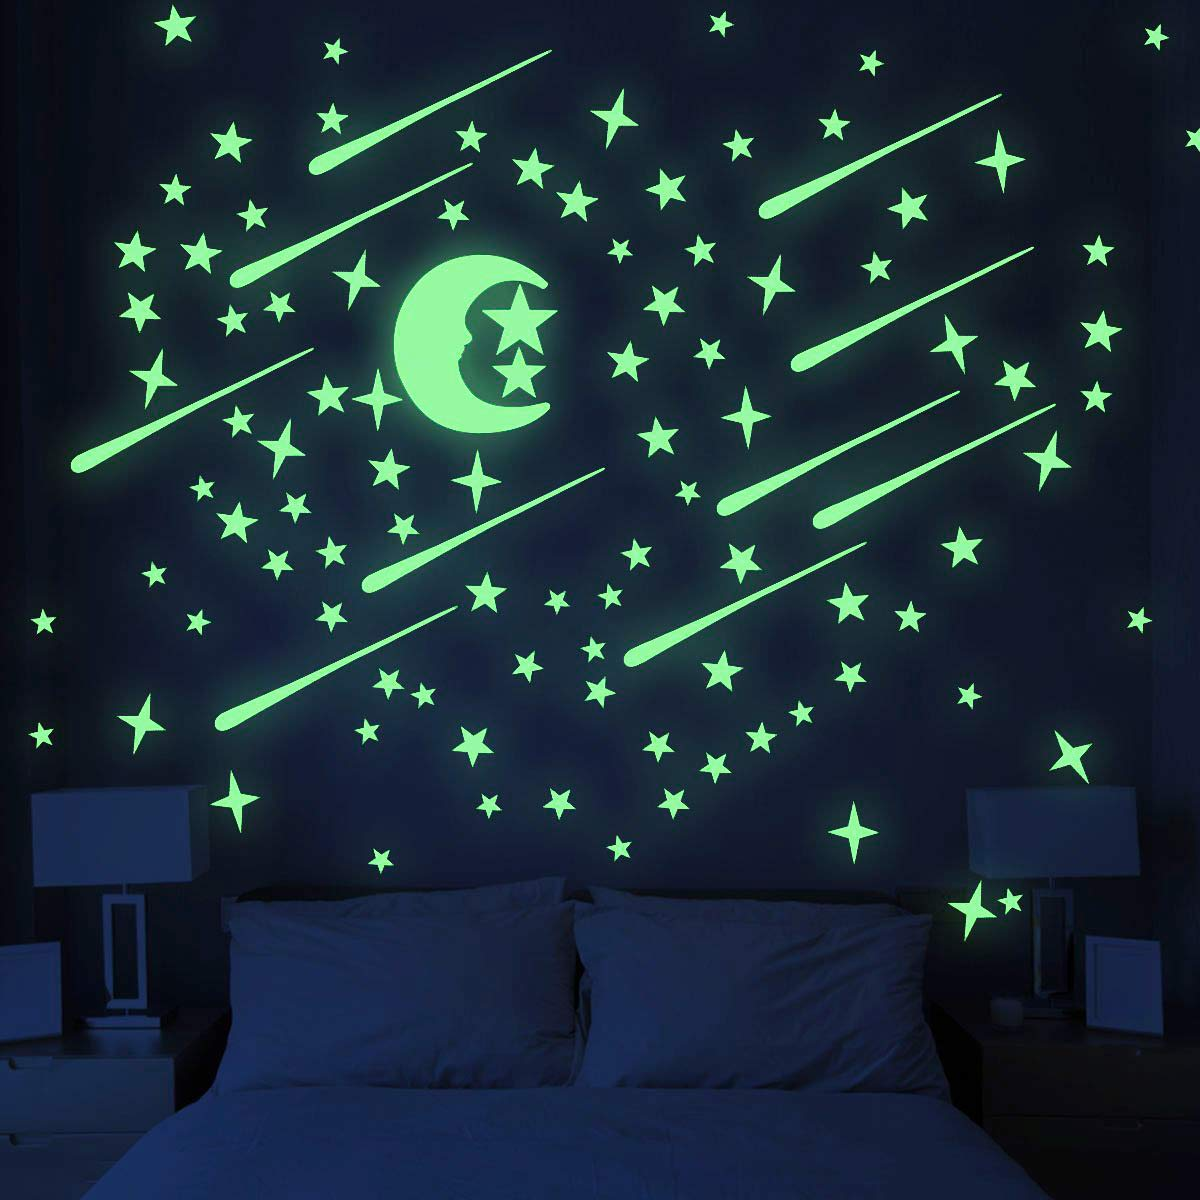 Glow In The Dark Stars and Moon - oddgifts.com